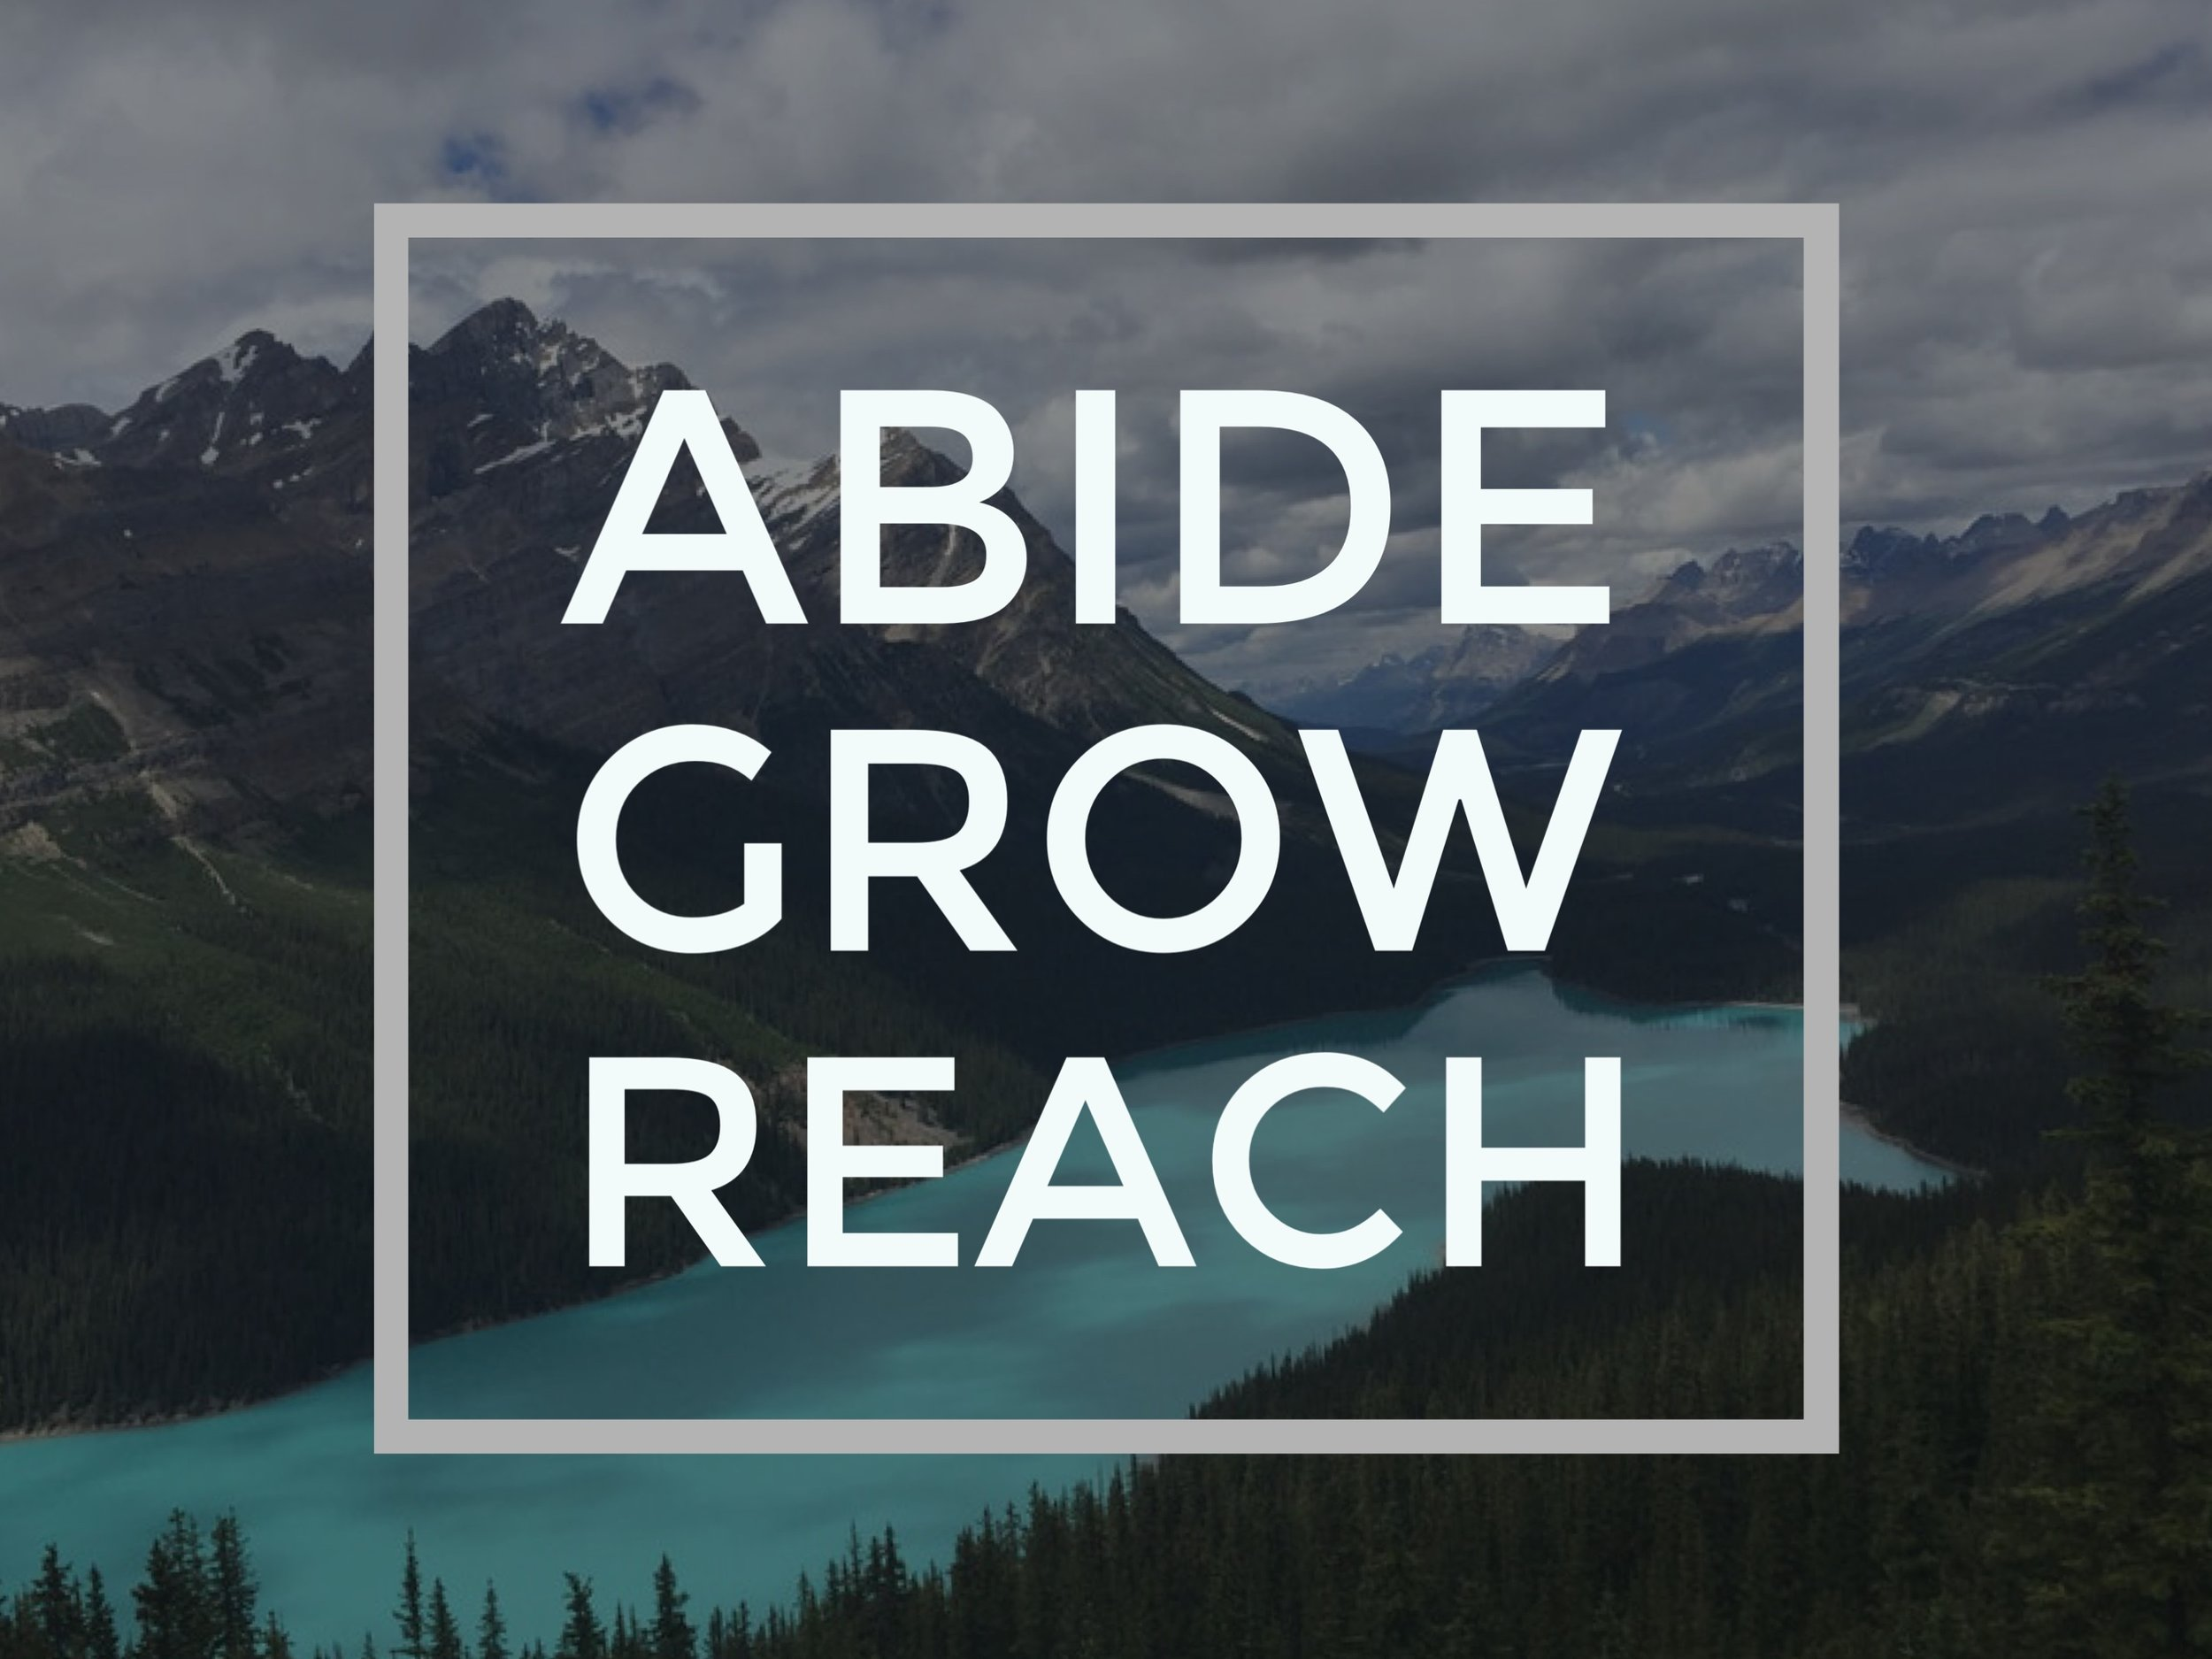 ABIDE_GROW_REACH.jpeg